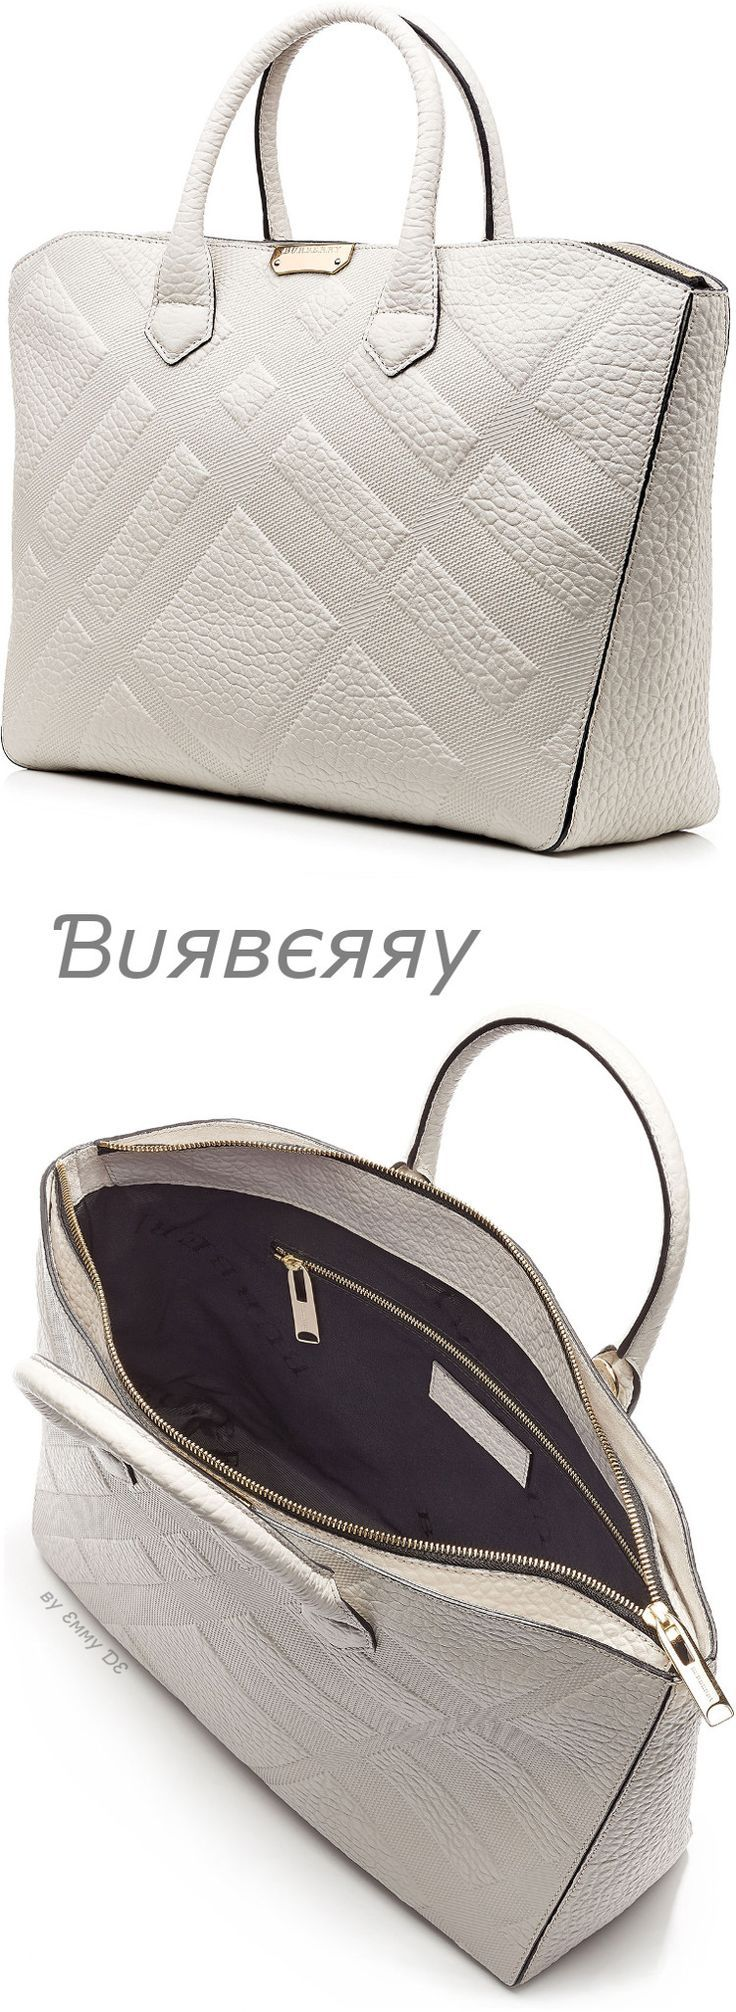 Emmy DE * Burberry - handbags and purses, online purse, money purse for ladies *ad